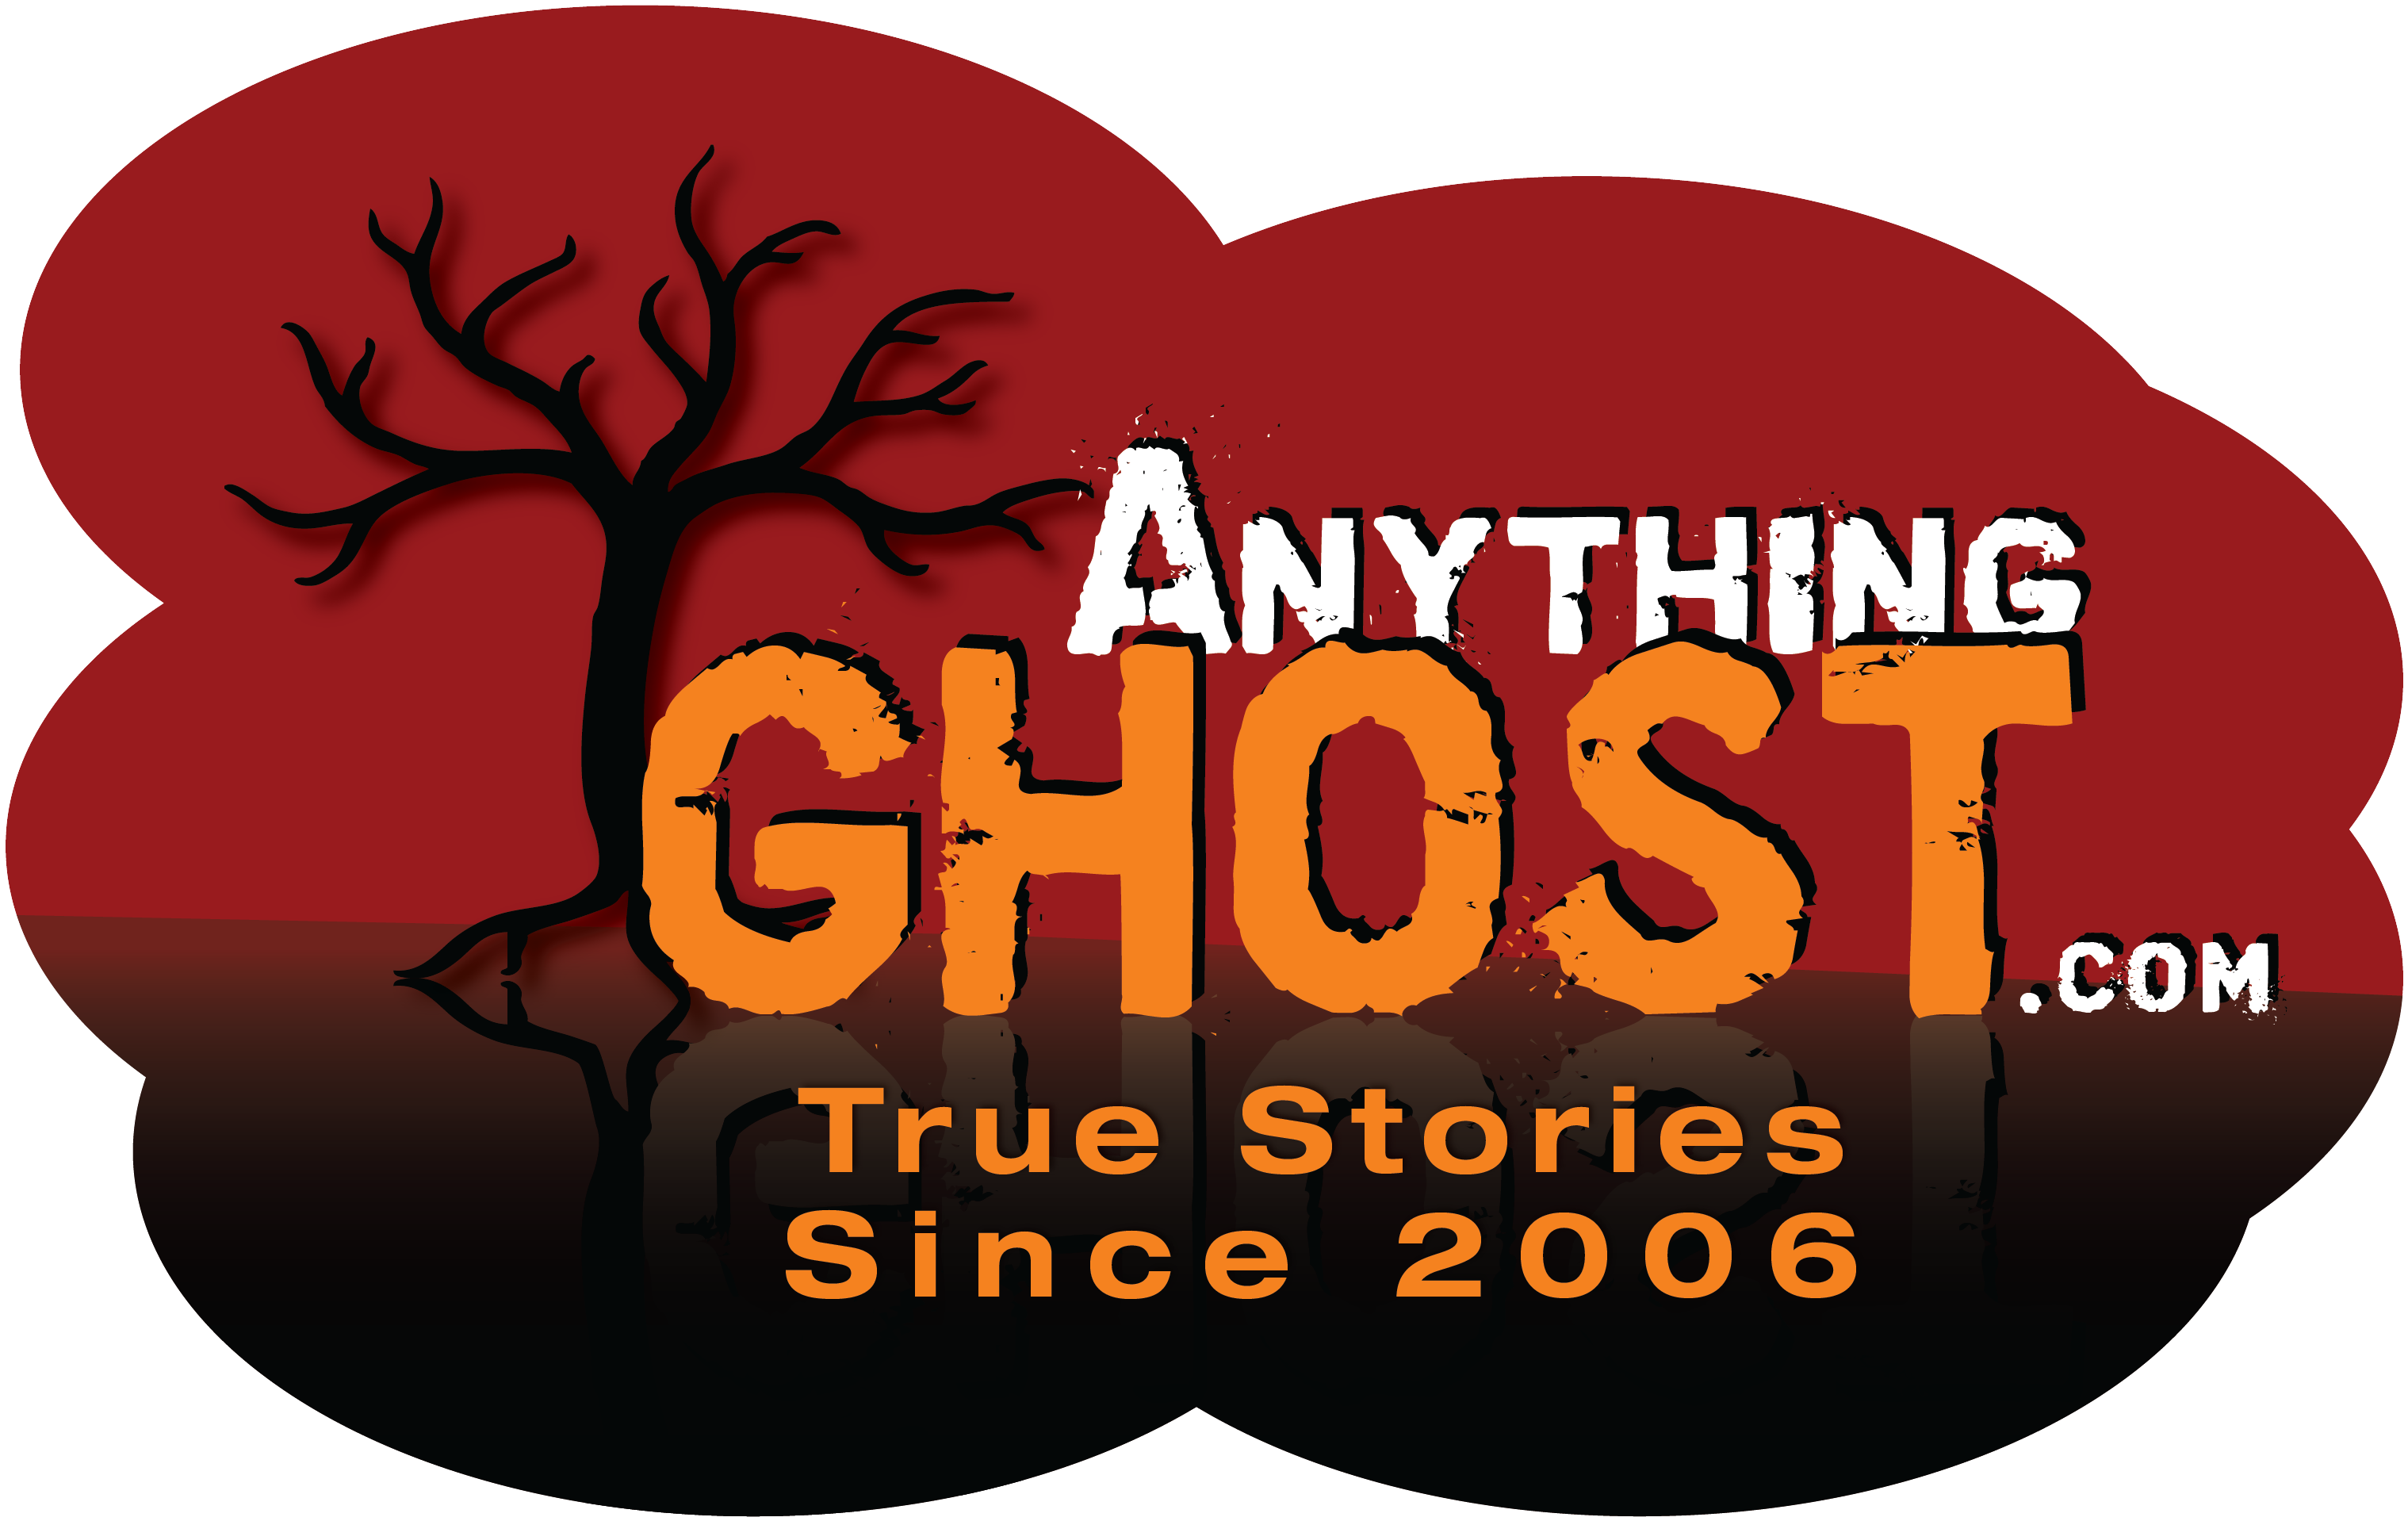 Anything Ghost Show with Lex Wahl